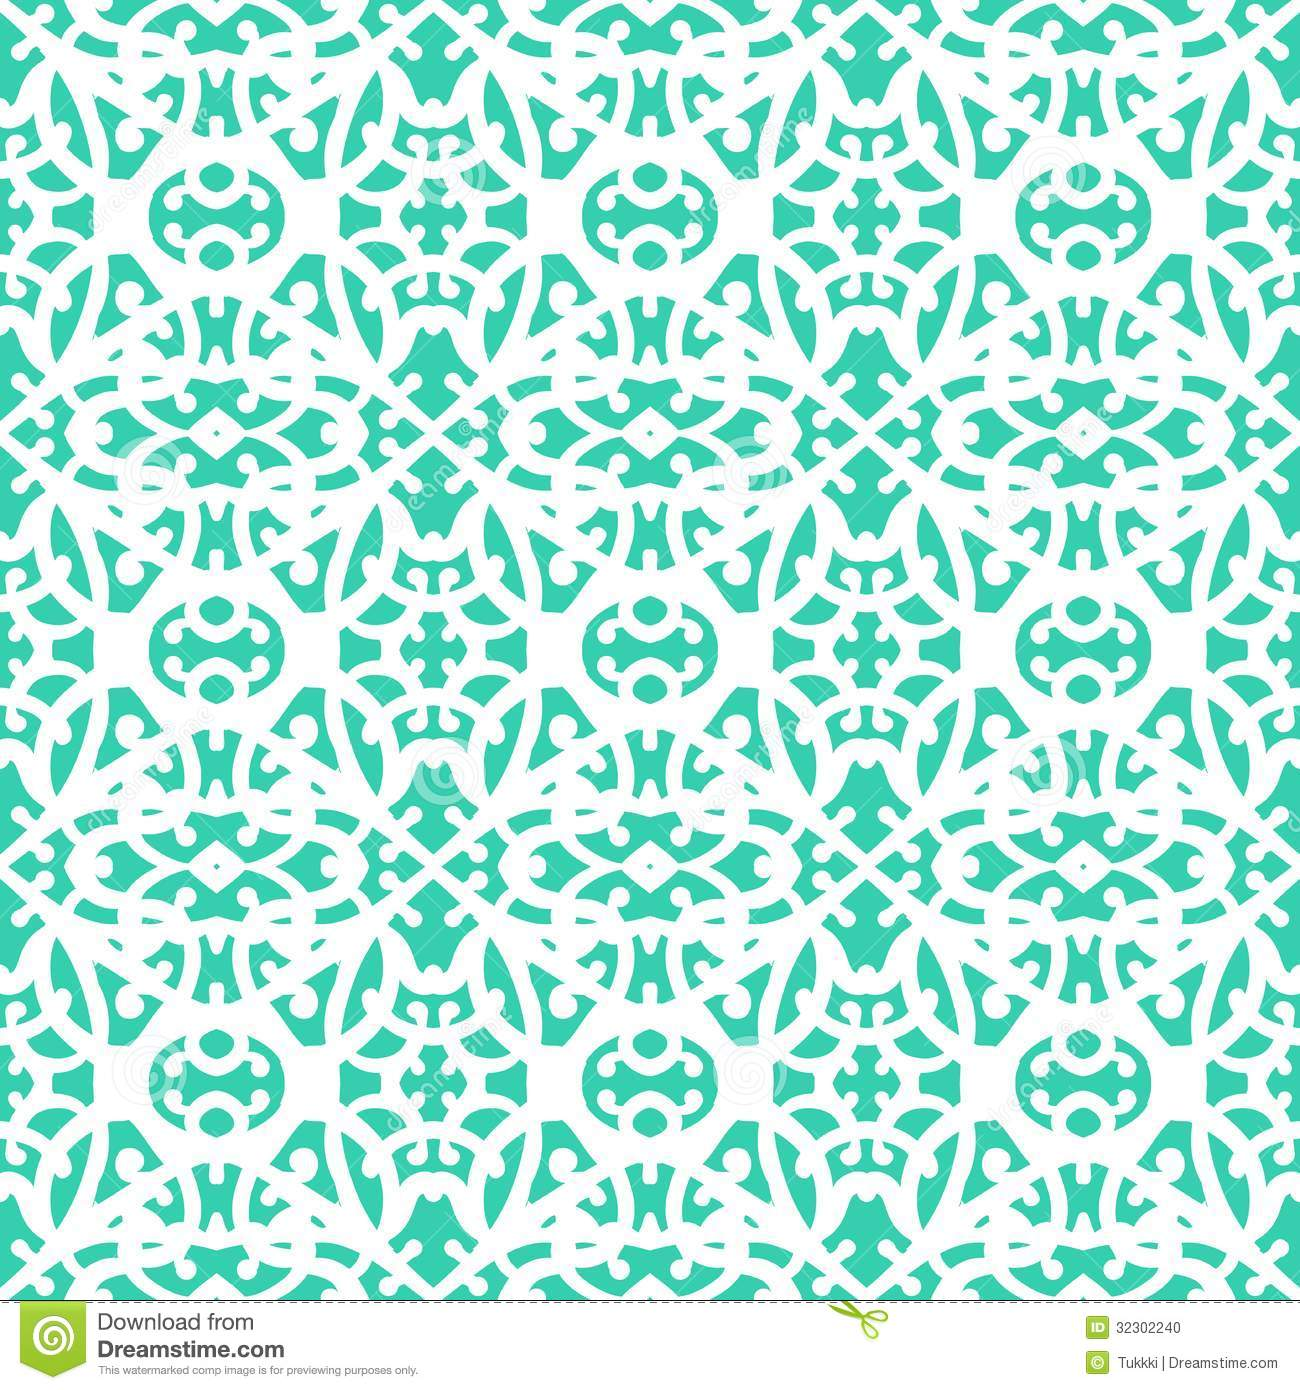 b1b13622986 Simple elegant lace pattern with white lines on aqua blue background in art  deco style. Texture for web